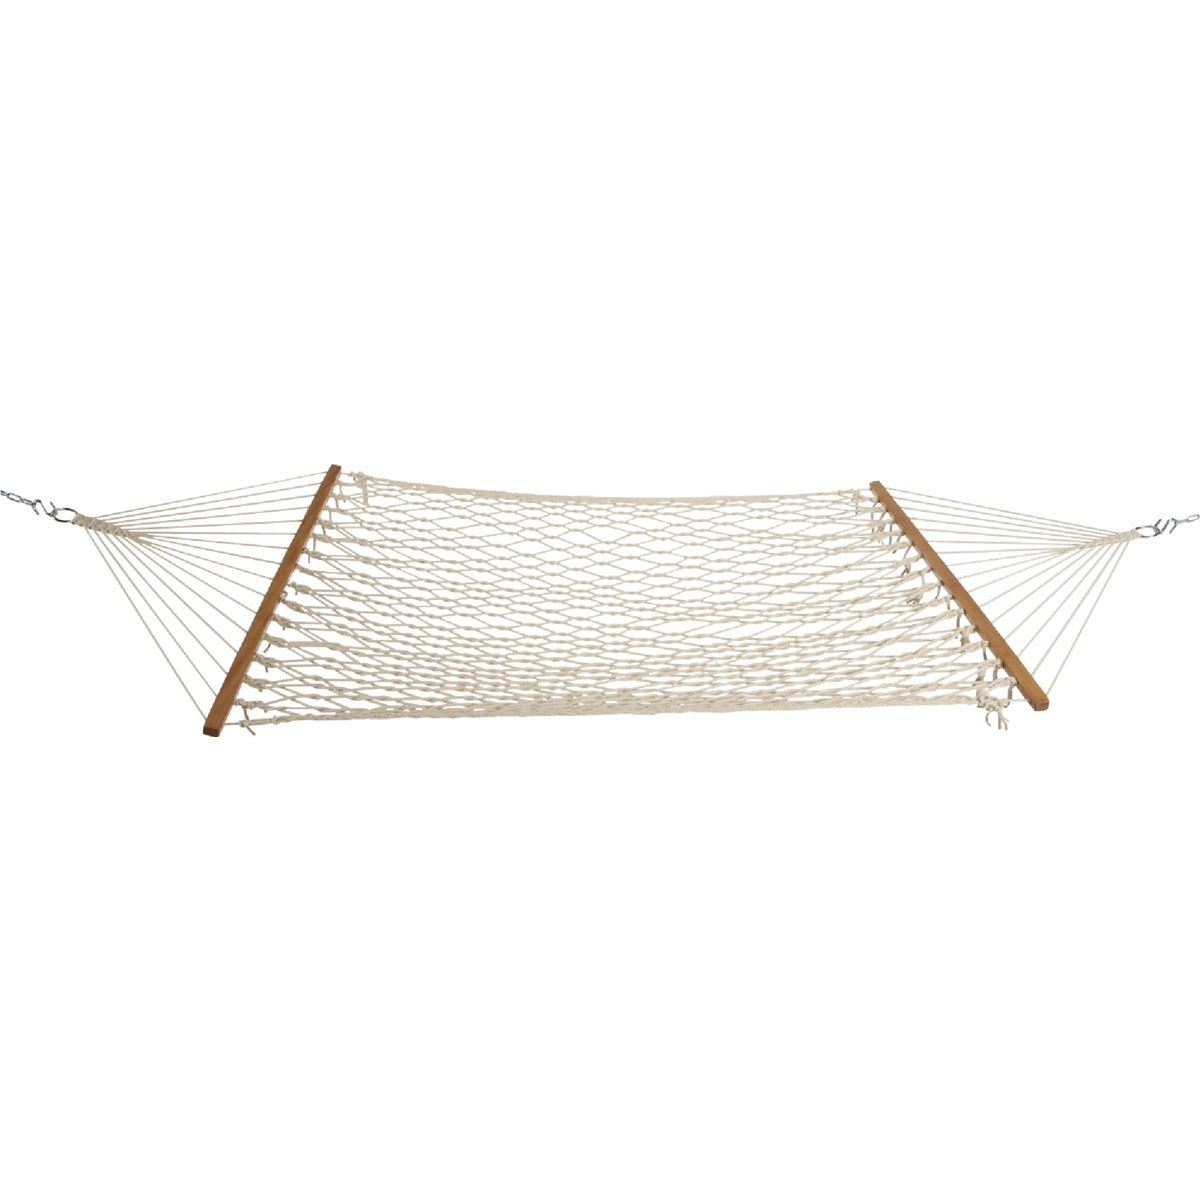 CASTAWAY ROPE HAMMOCK - PC-11CW by The Hammock Source